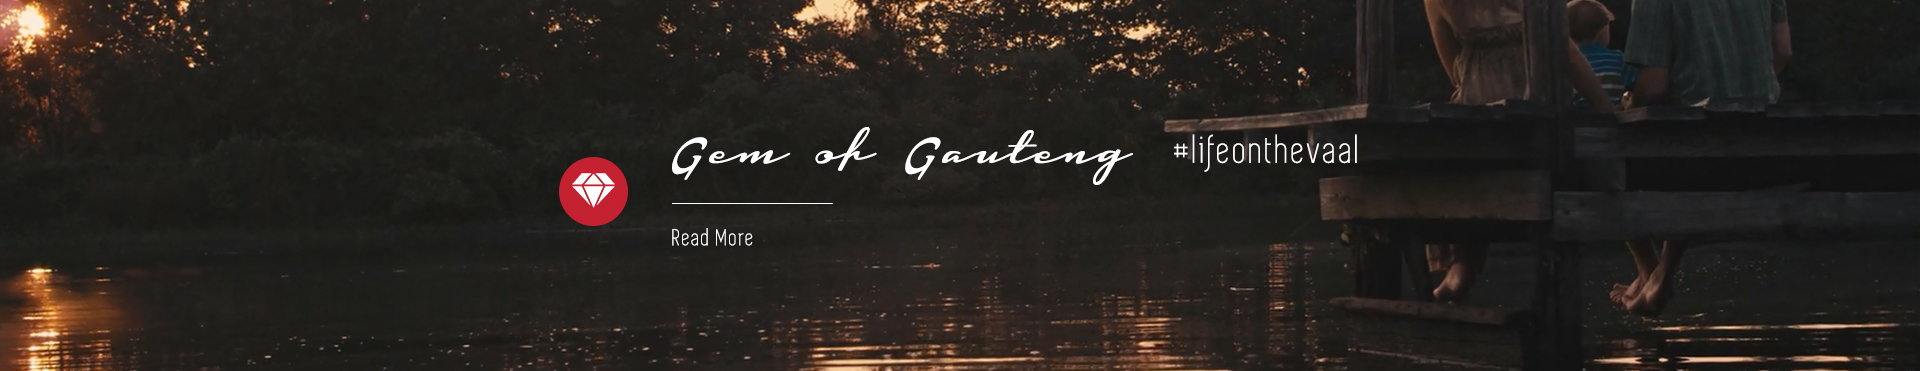 The Vaal River is the Gem Of Gauteng